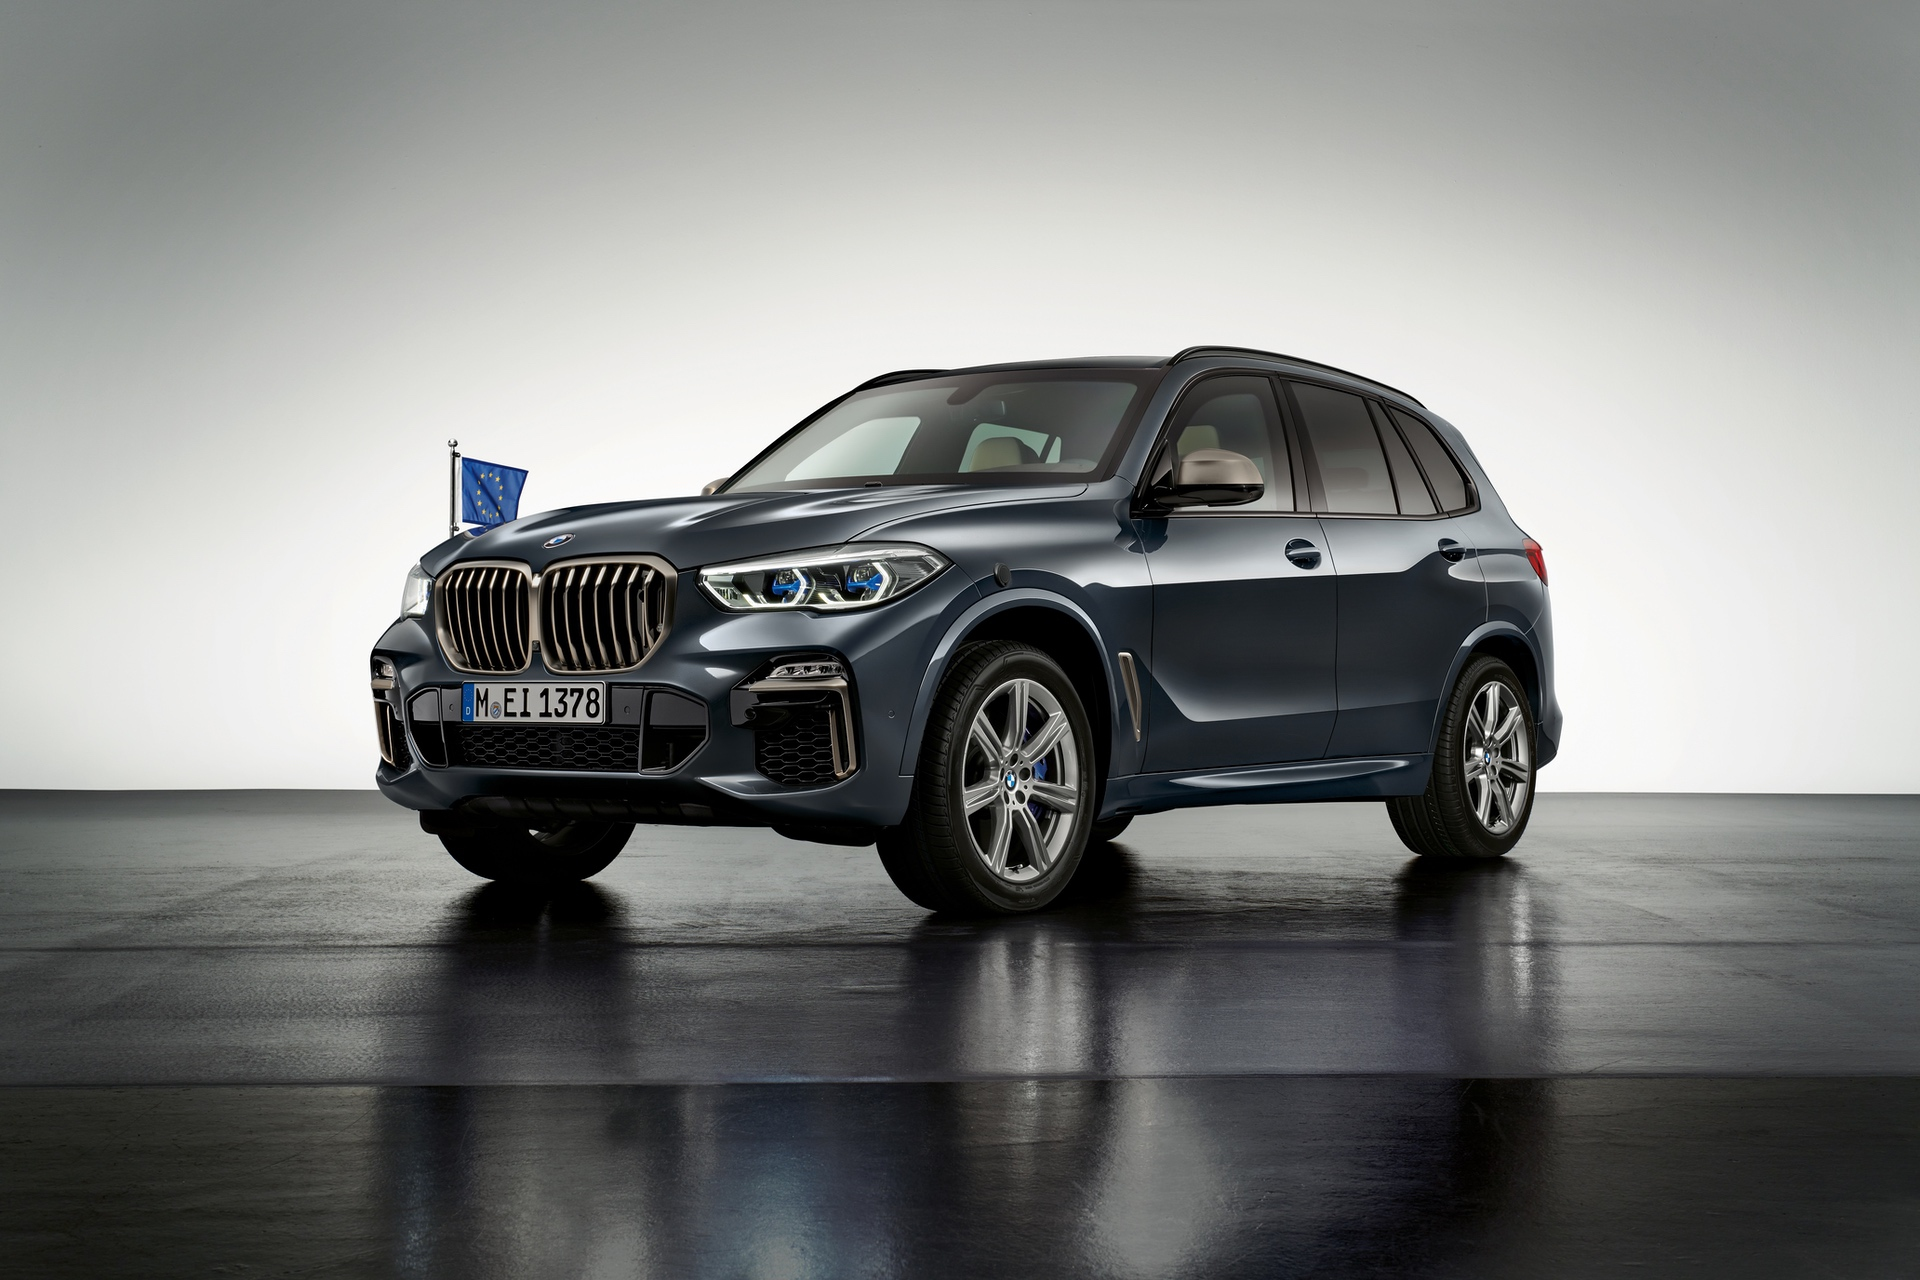 BMW X5 Protection VR6 armored 4